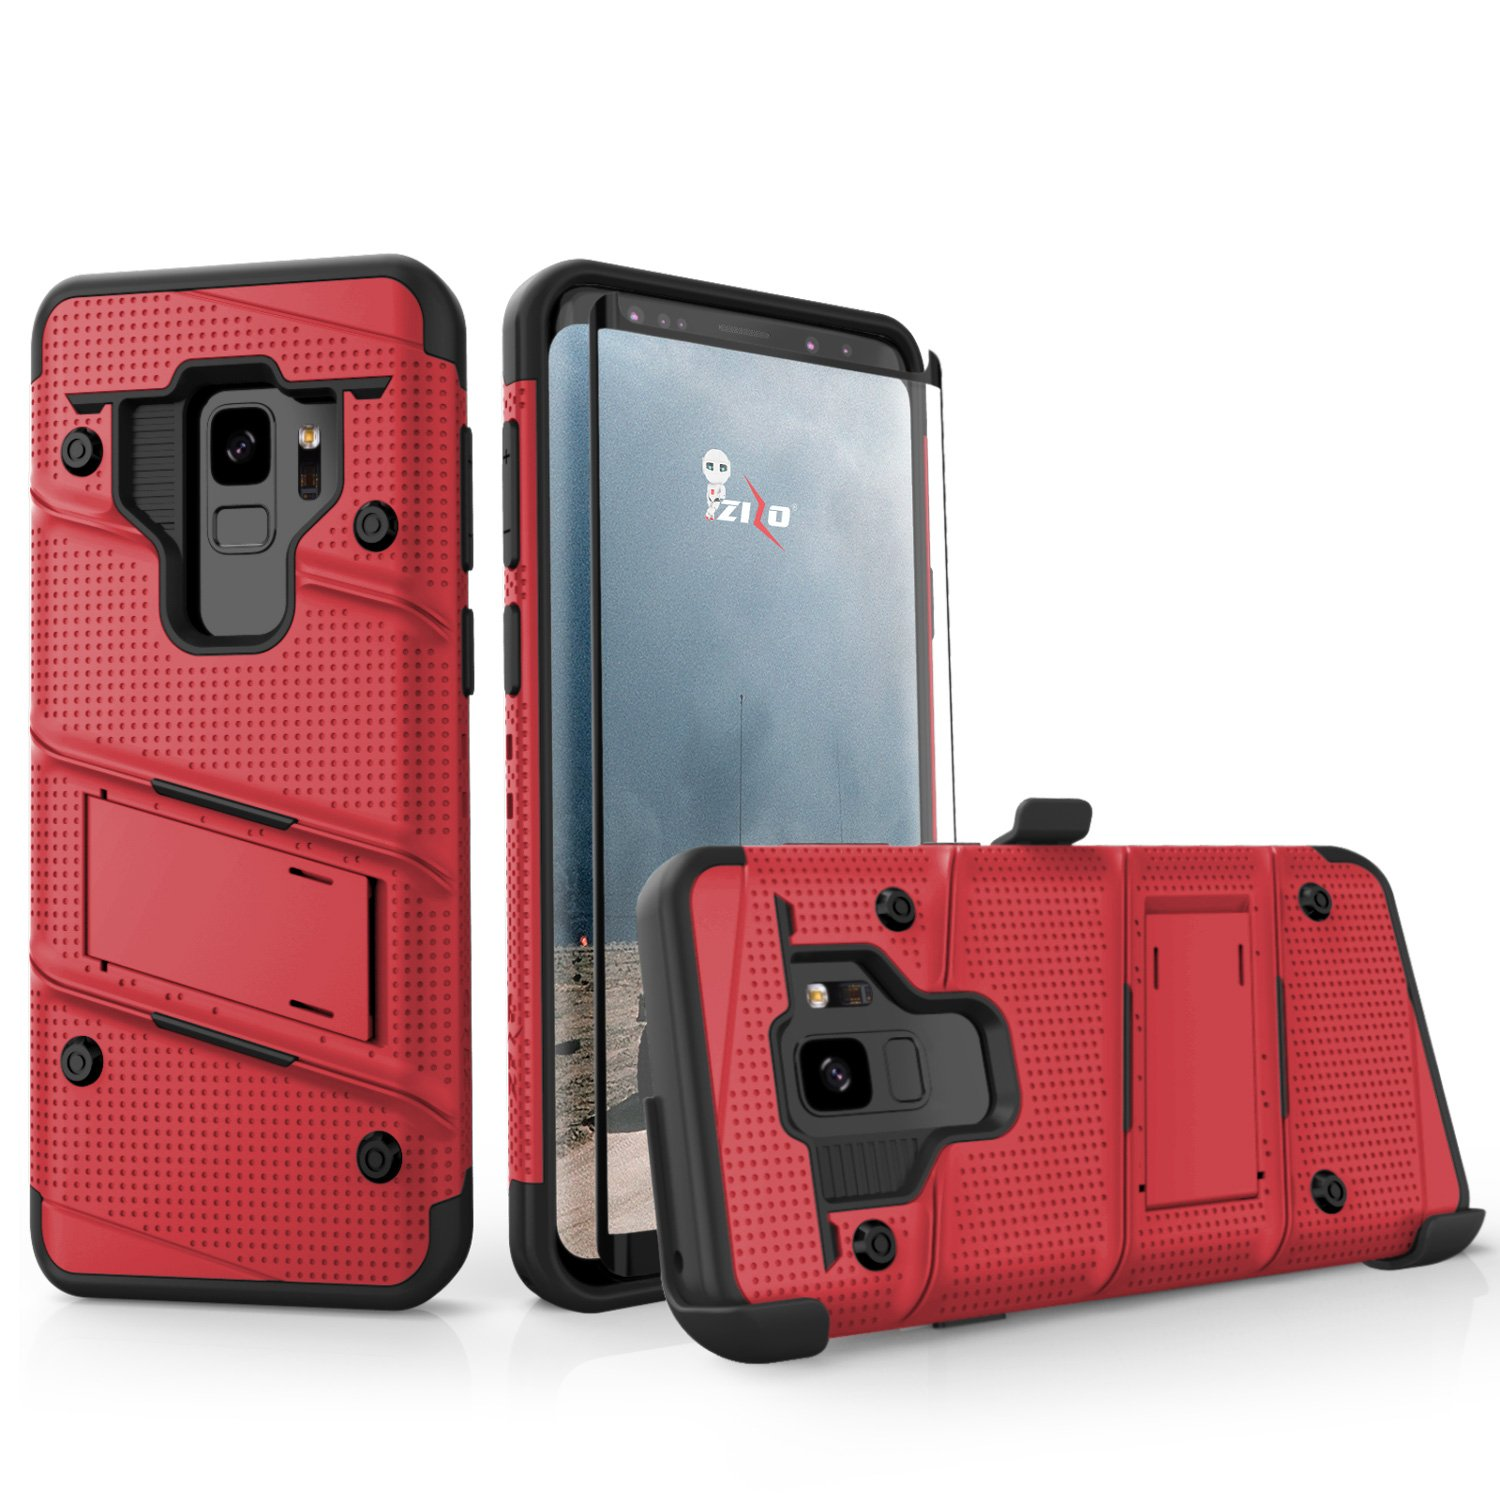 Zizo Bolt Series Compatible with Samsung Galaxy S9 Case Military Grade Drop Tested with Tempered Glass Screen Protector Holster Black RED